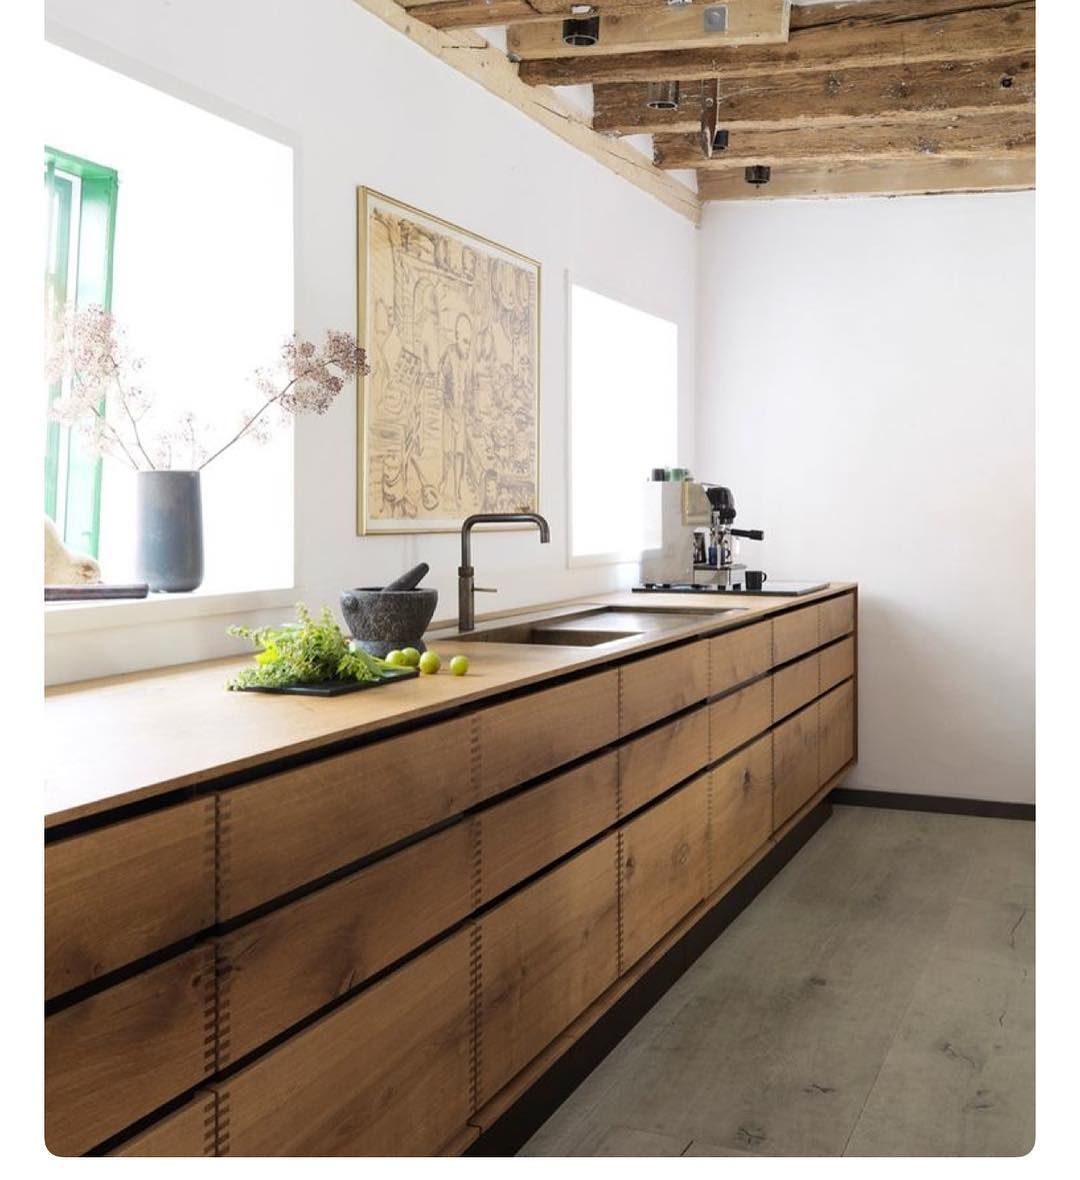 Prairie Style Kitchen Cabinets: Prairie_home_styling One Day, Everyone Will Realize How